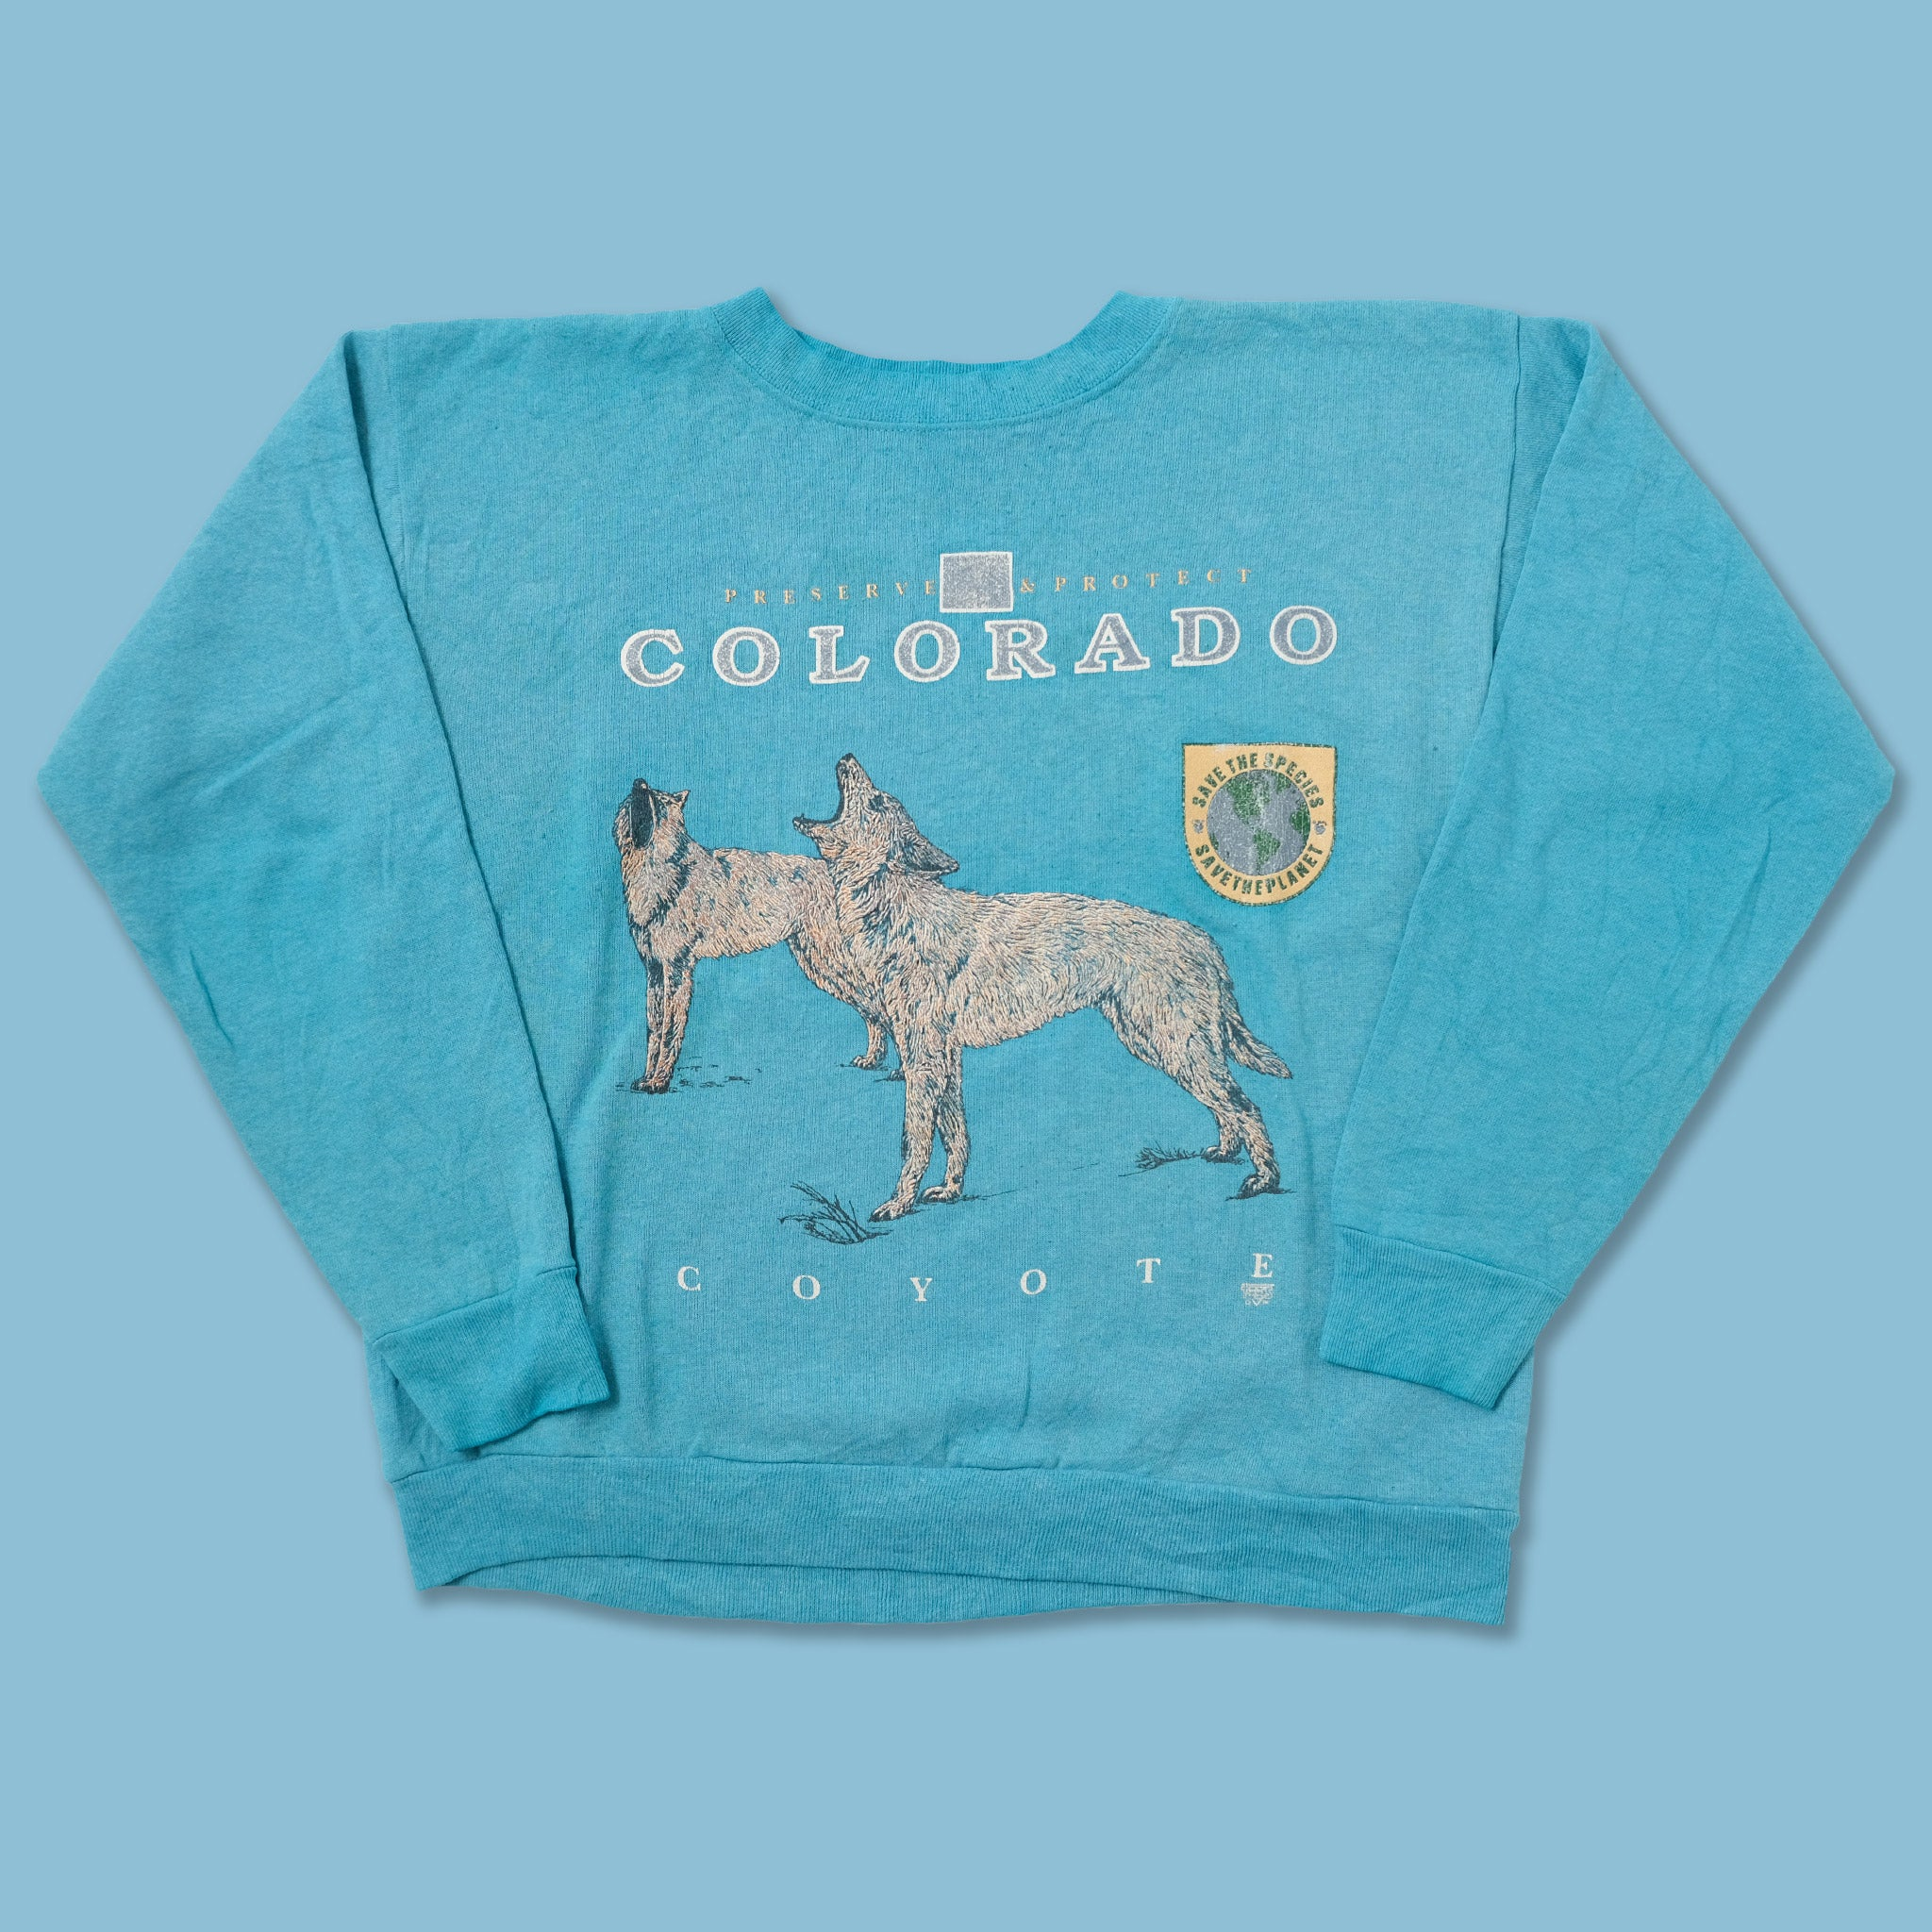 Vintage Coyote Sweater Small / Medium